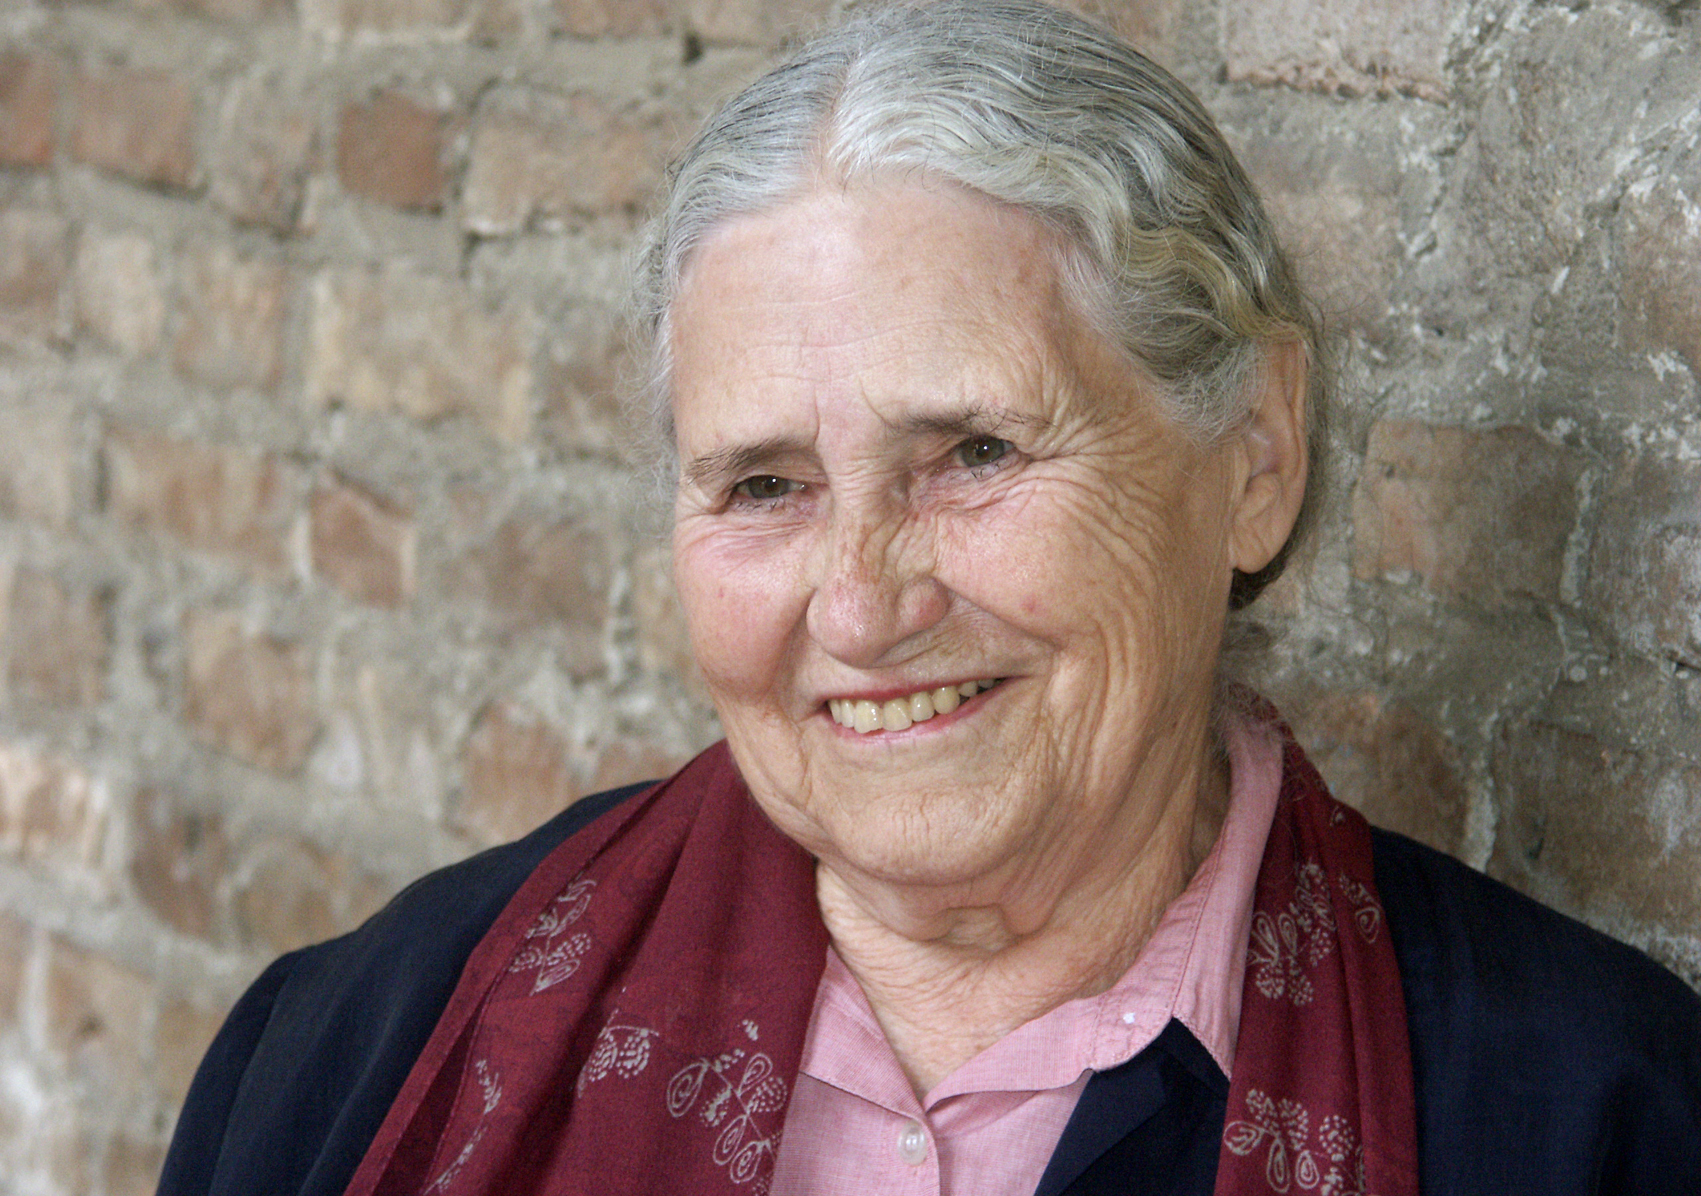 group minds by doris lessing Elsa pham-minh evaluation of the argument group minds by doris lessing 1 provide a short summary doris lessing's group minds talks about the fact that human.